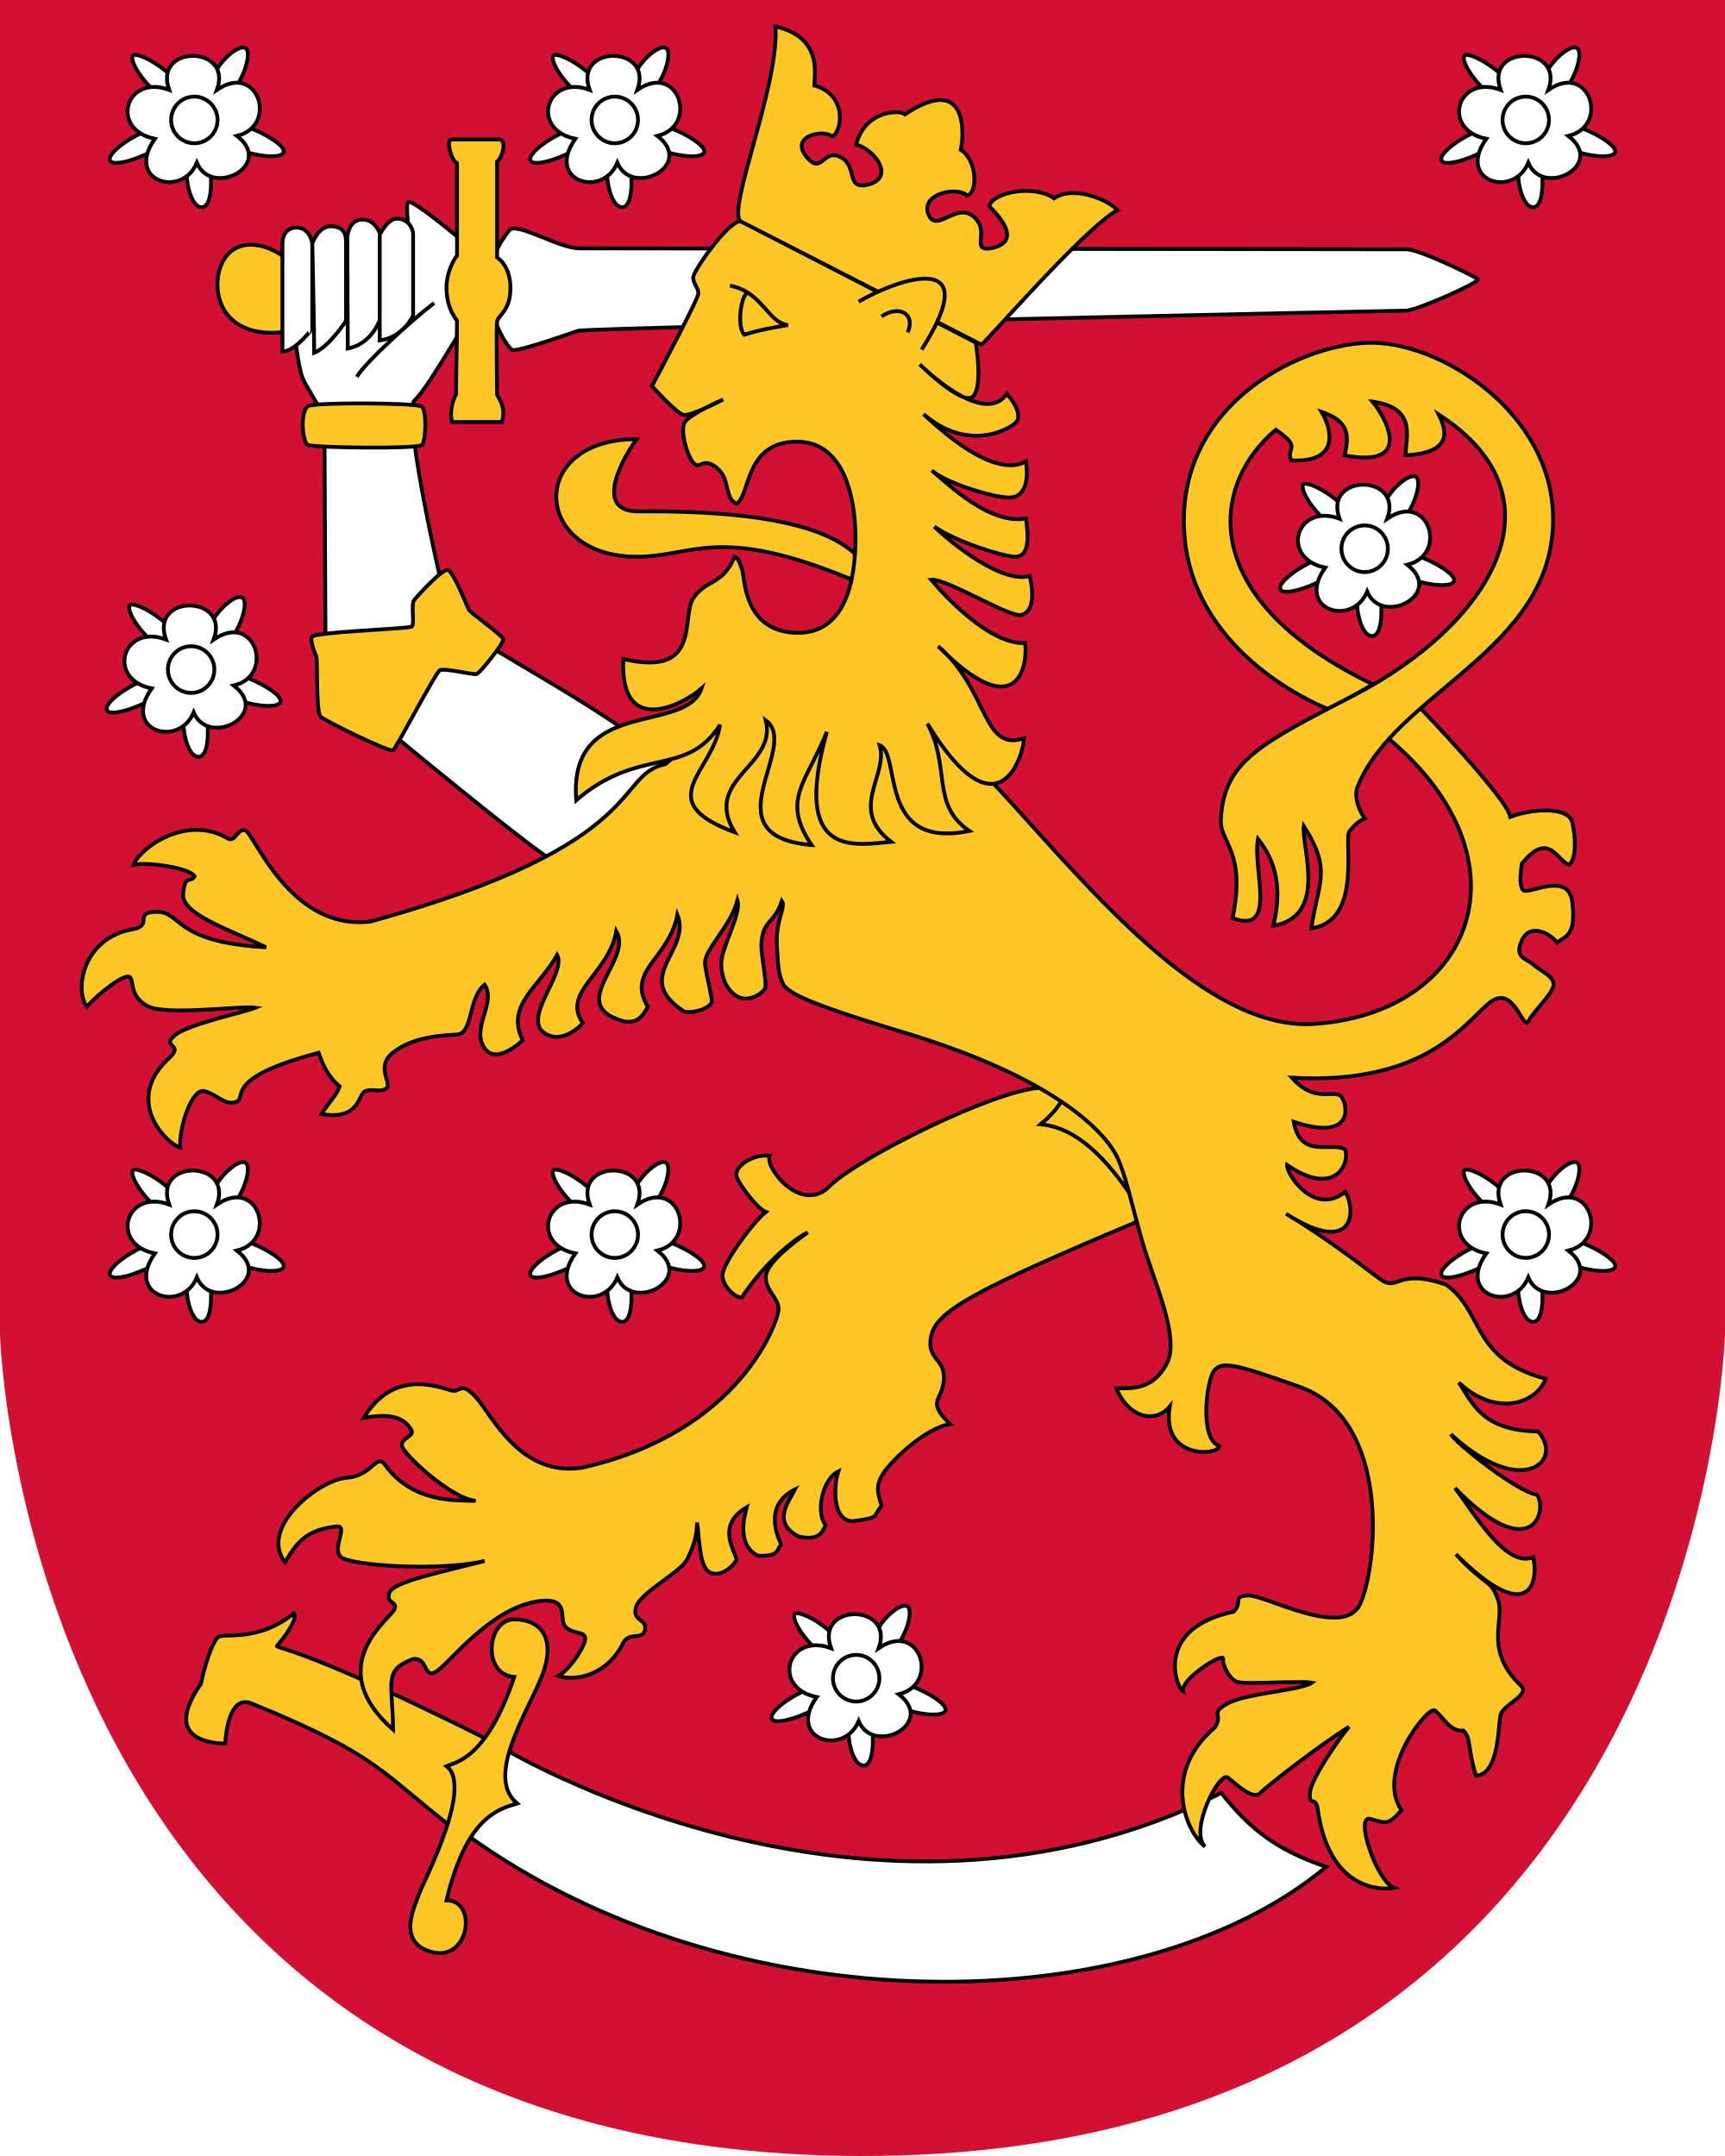 2000px-Coat_of_arms_of_Finland